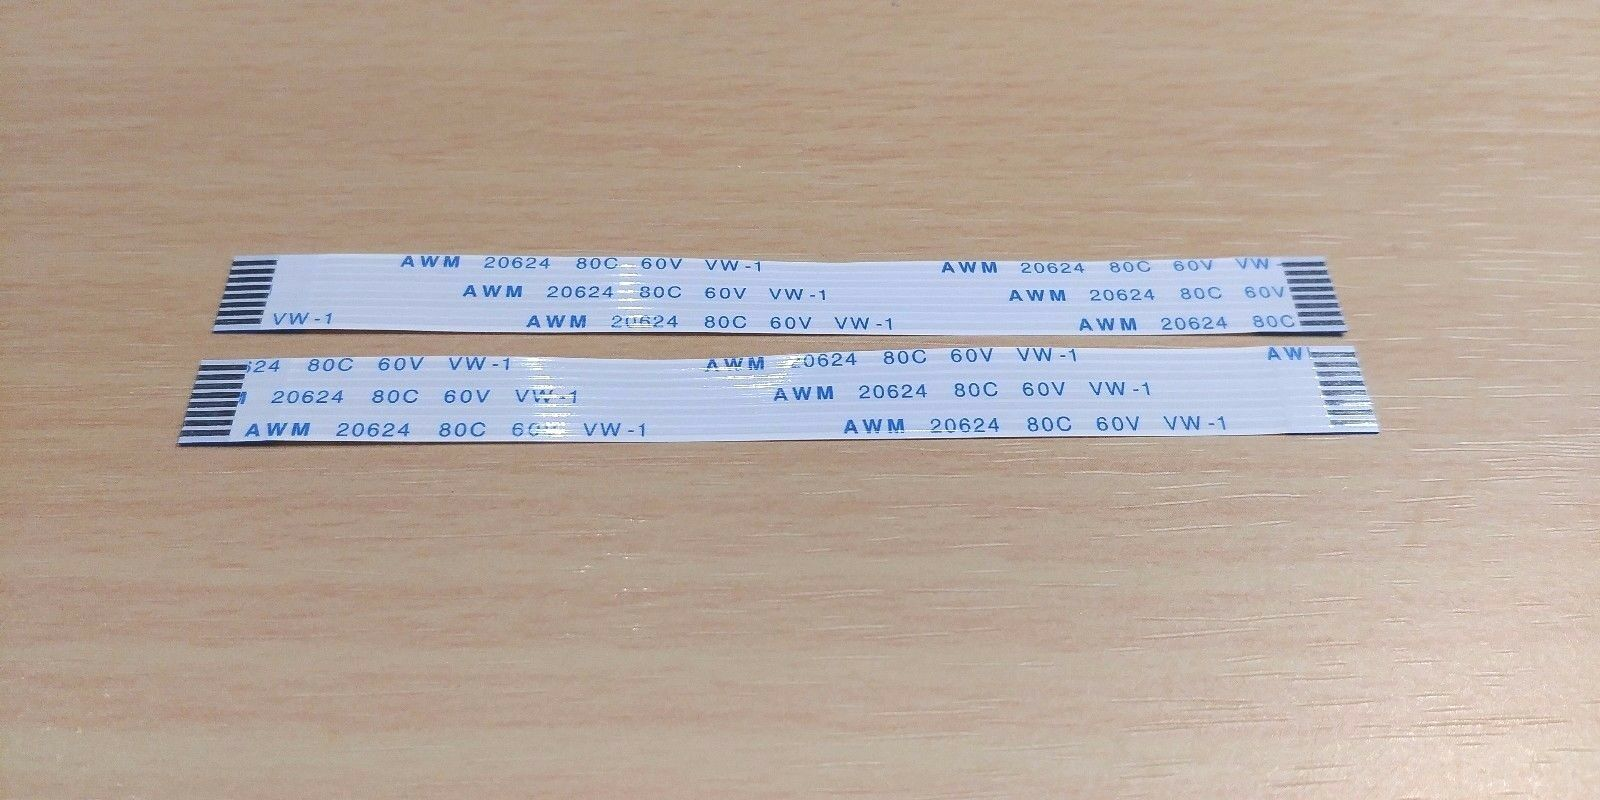 2 PACK - 100mm 8 pin 1mm Pitch FFC FPC Ribbon Cable FORWARD AWM 20624 80C 60V